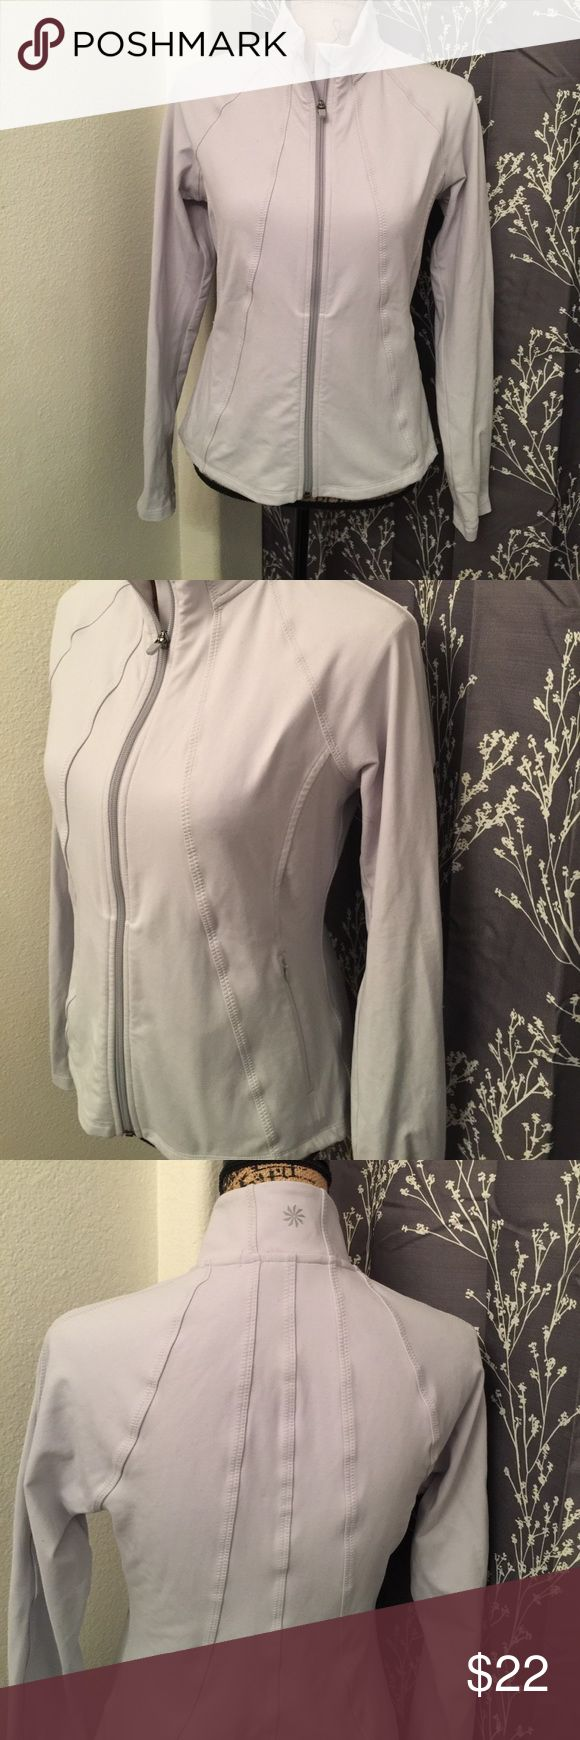 Athleta gray silver zip up jacket Very nice quality!! Worn and washed gently. Not a whole lot of wear just to and from spin classes. No stains or tears. Great condition! Athleta Jackets & Coats